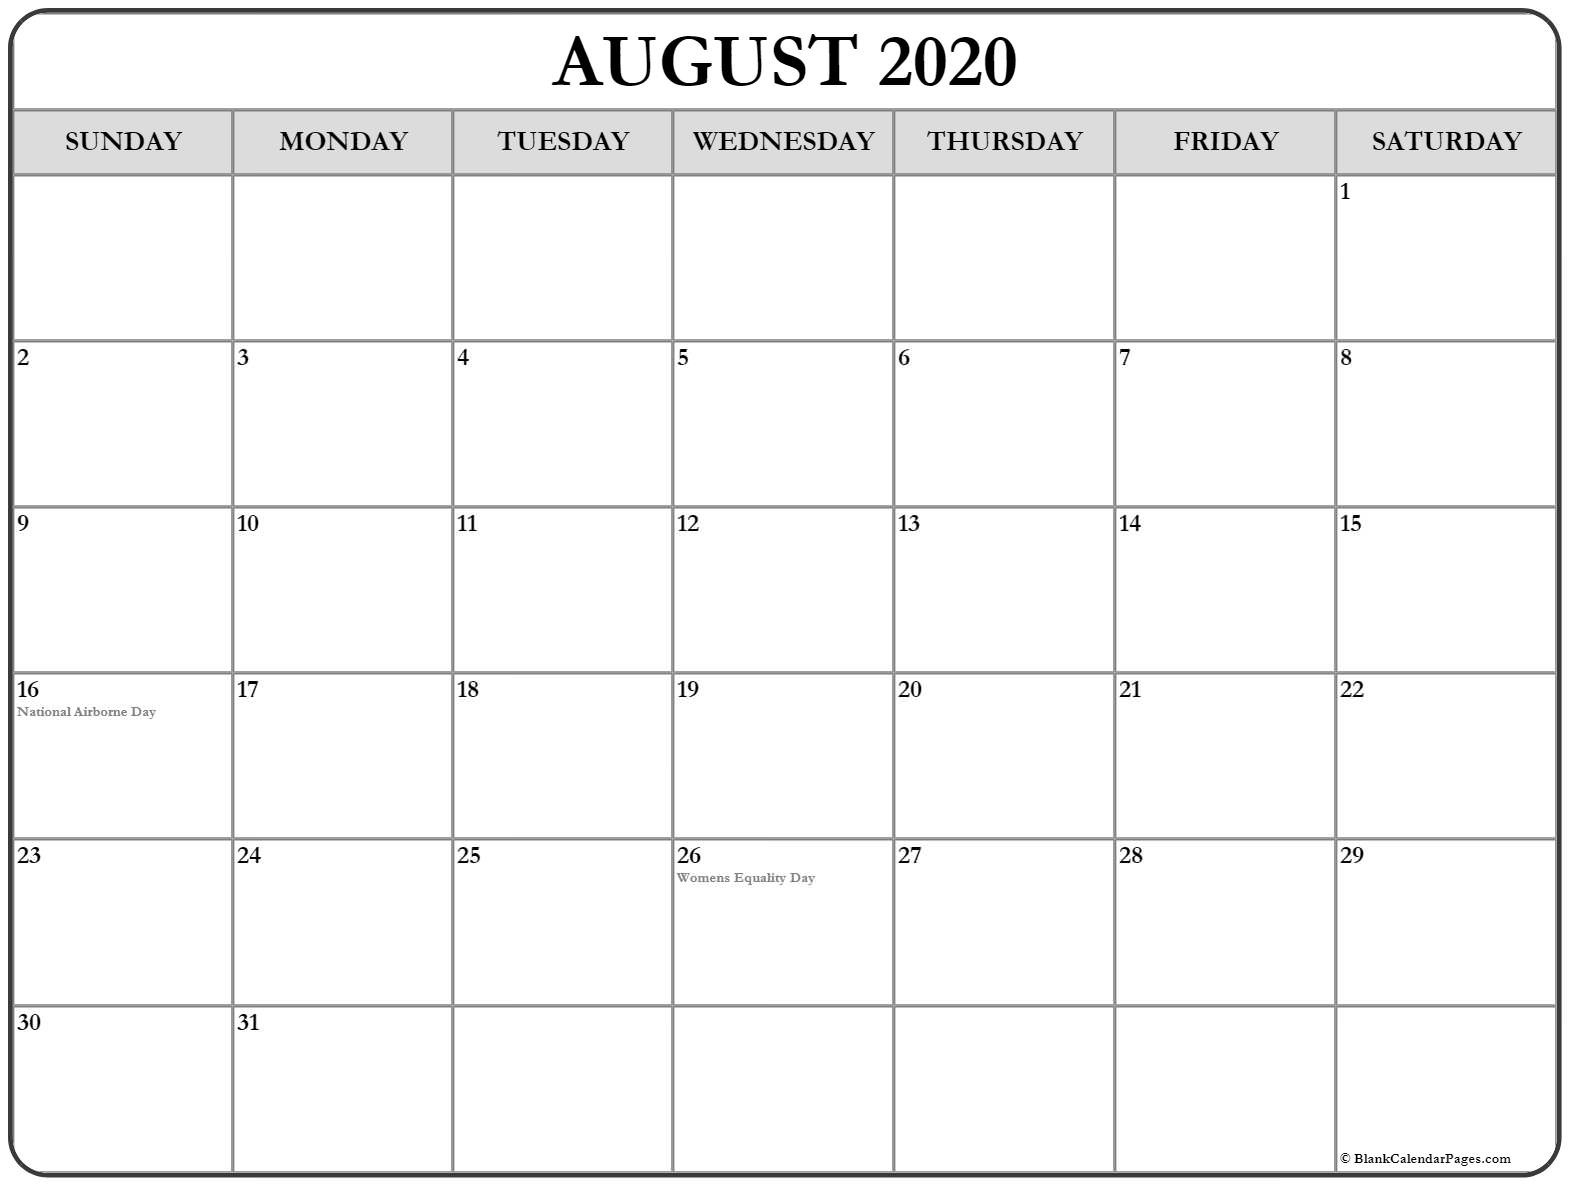 Collection Of August 2020 Calendars With Holidays  National Day Calendar August 2020